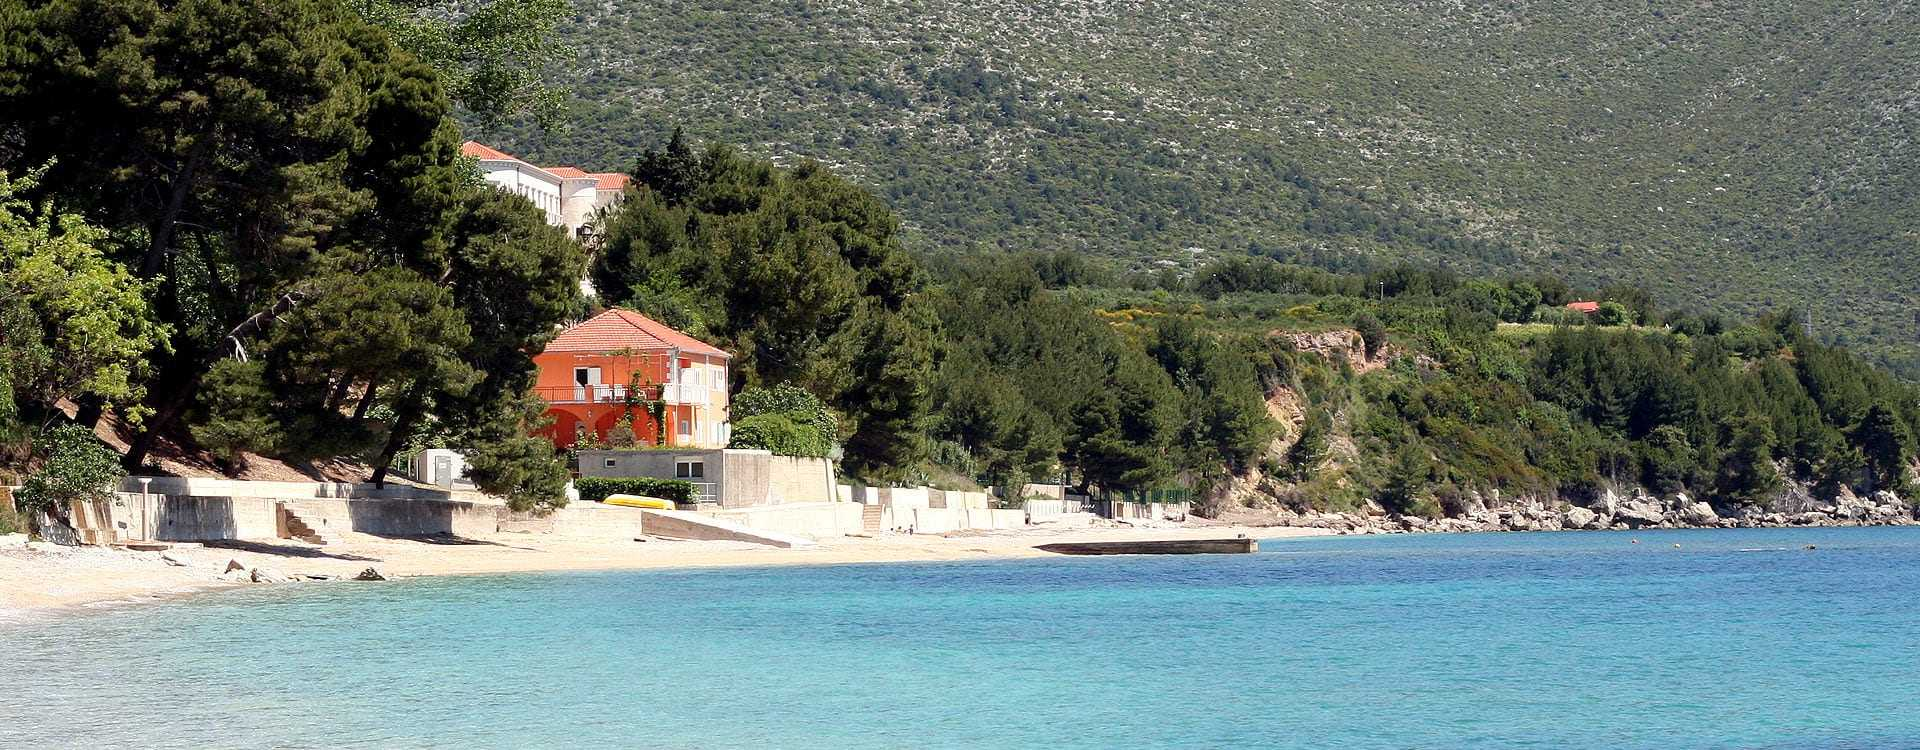 croatian-island-of-korcula-gets-a-pdo